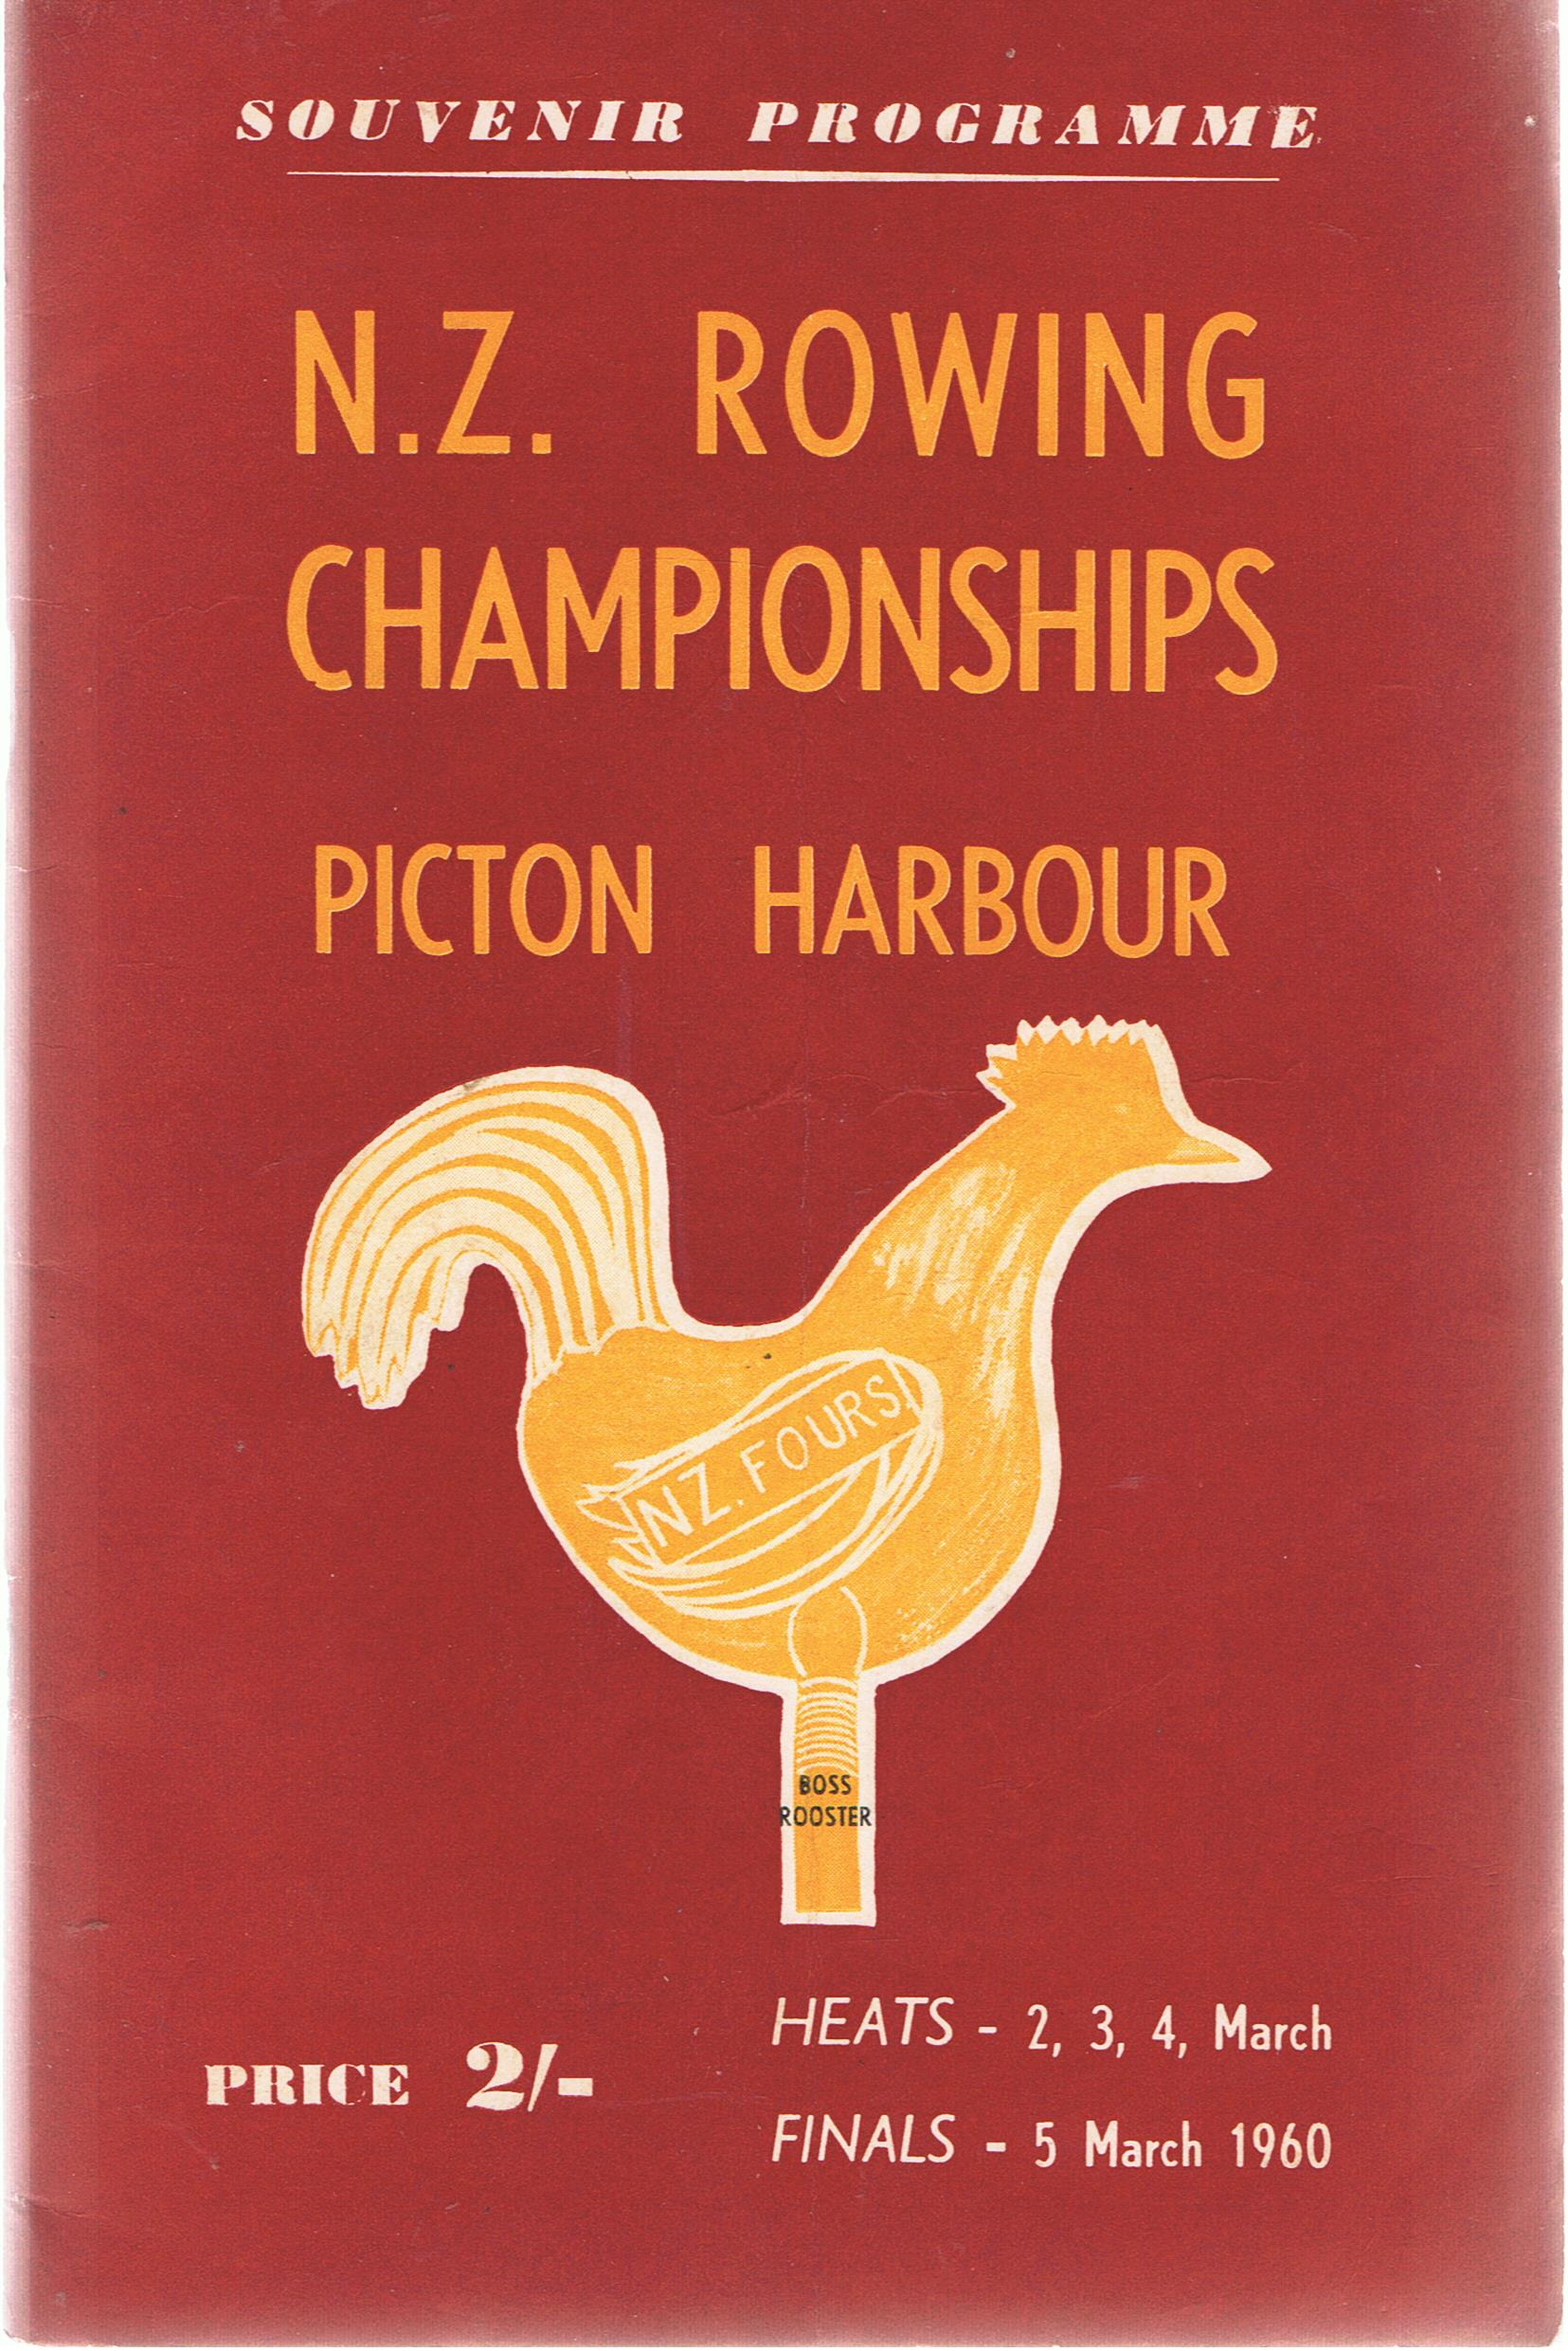 Image for N.Z. [New Zealand] Rowing Championships. Picton Harbour 1960. Souvenir Progarmme.